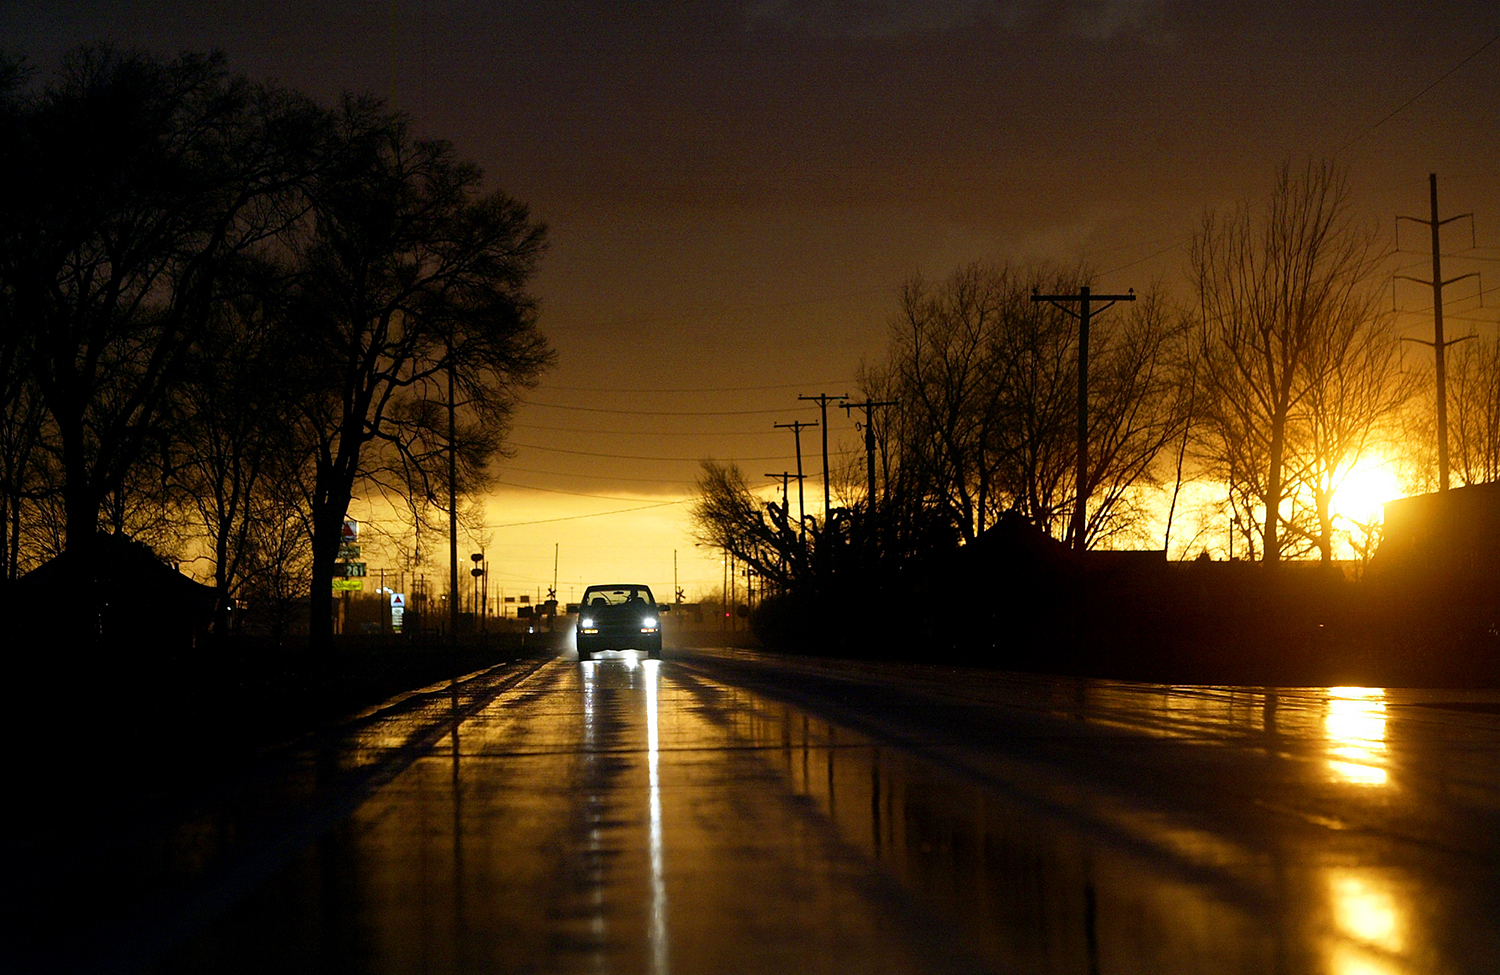 Motorists head east on Camp Butler Road as the setting sun breaks through storm clouds. Jonathan Kirshner/The State Journal-Register